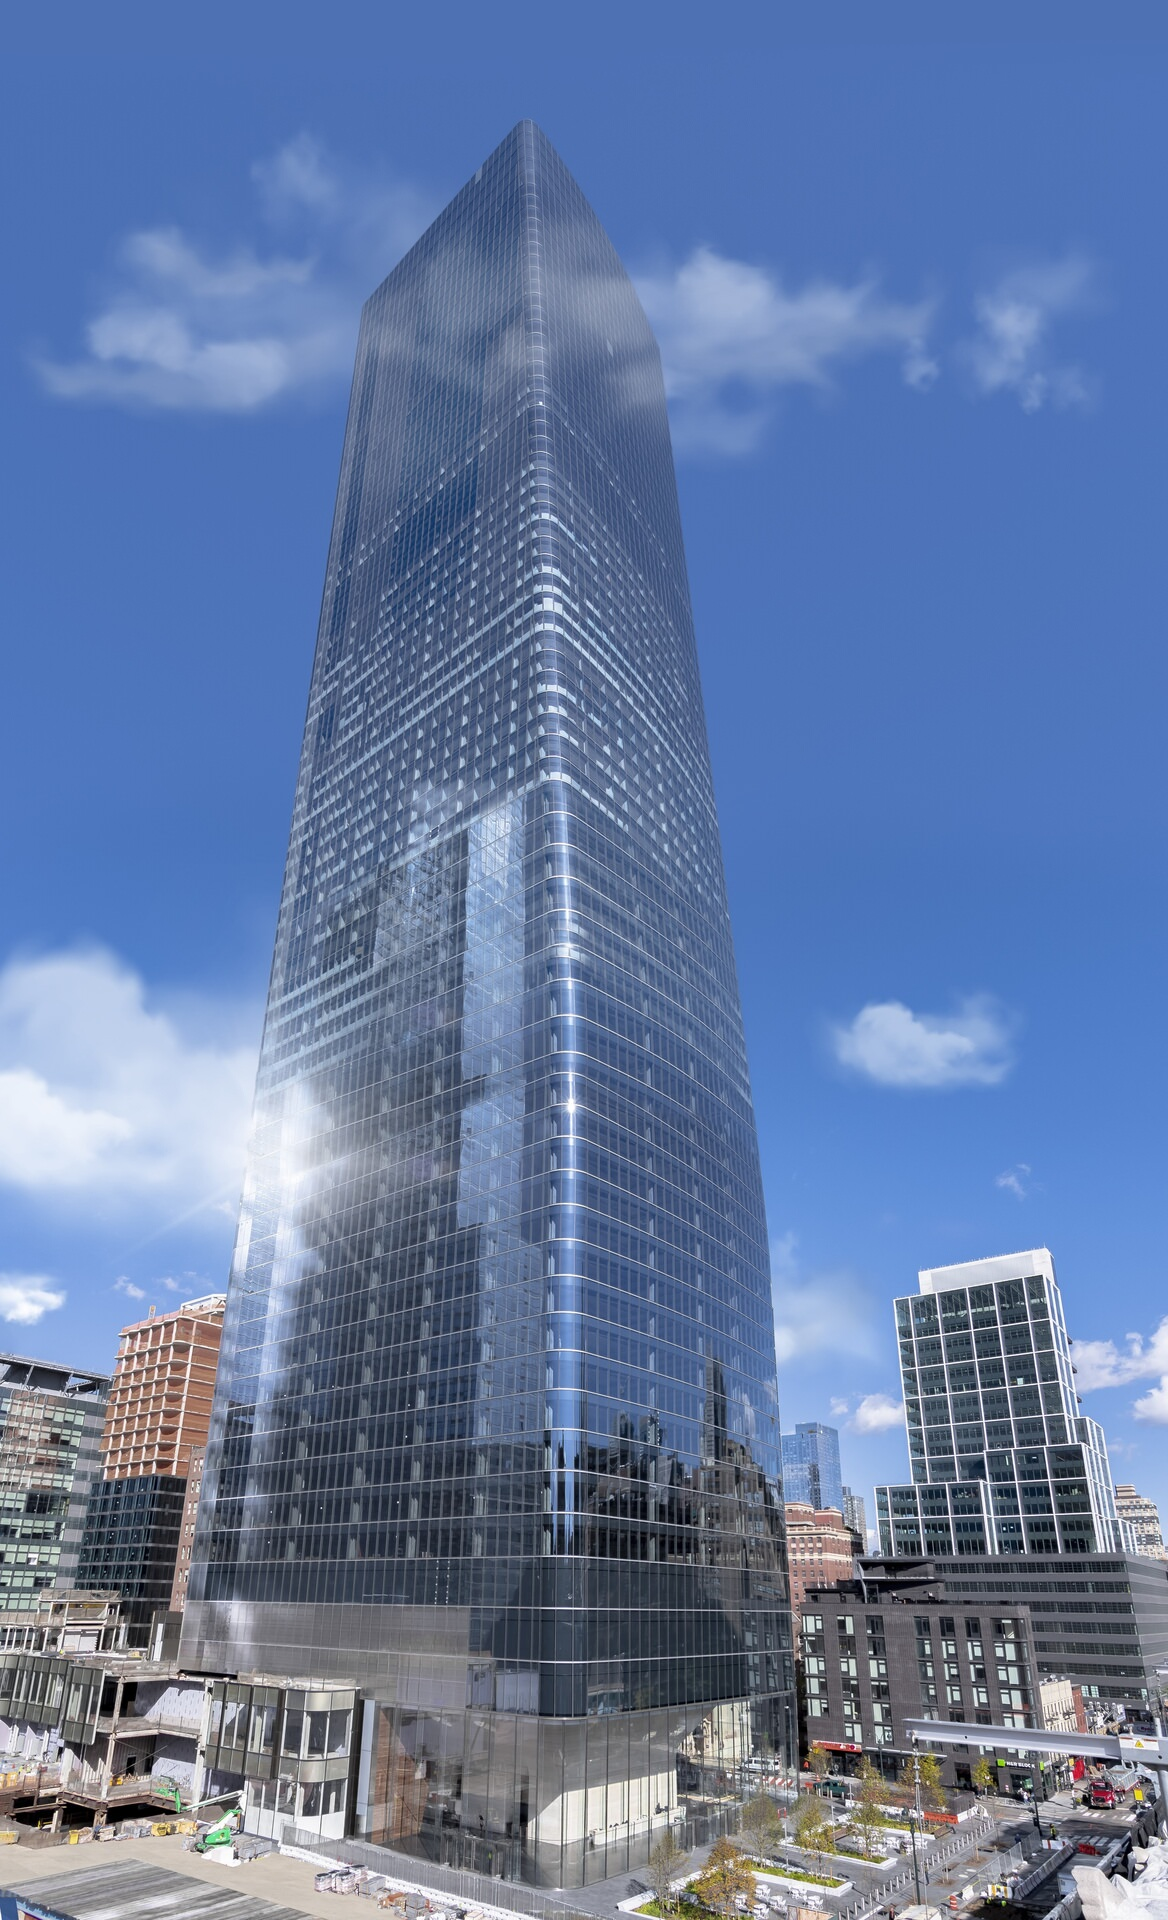 A very large skyscraper that is located in a downtown area and is made with a lot of glass.